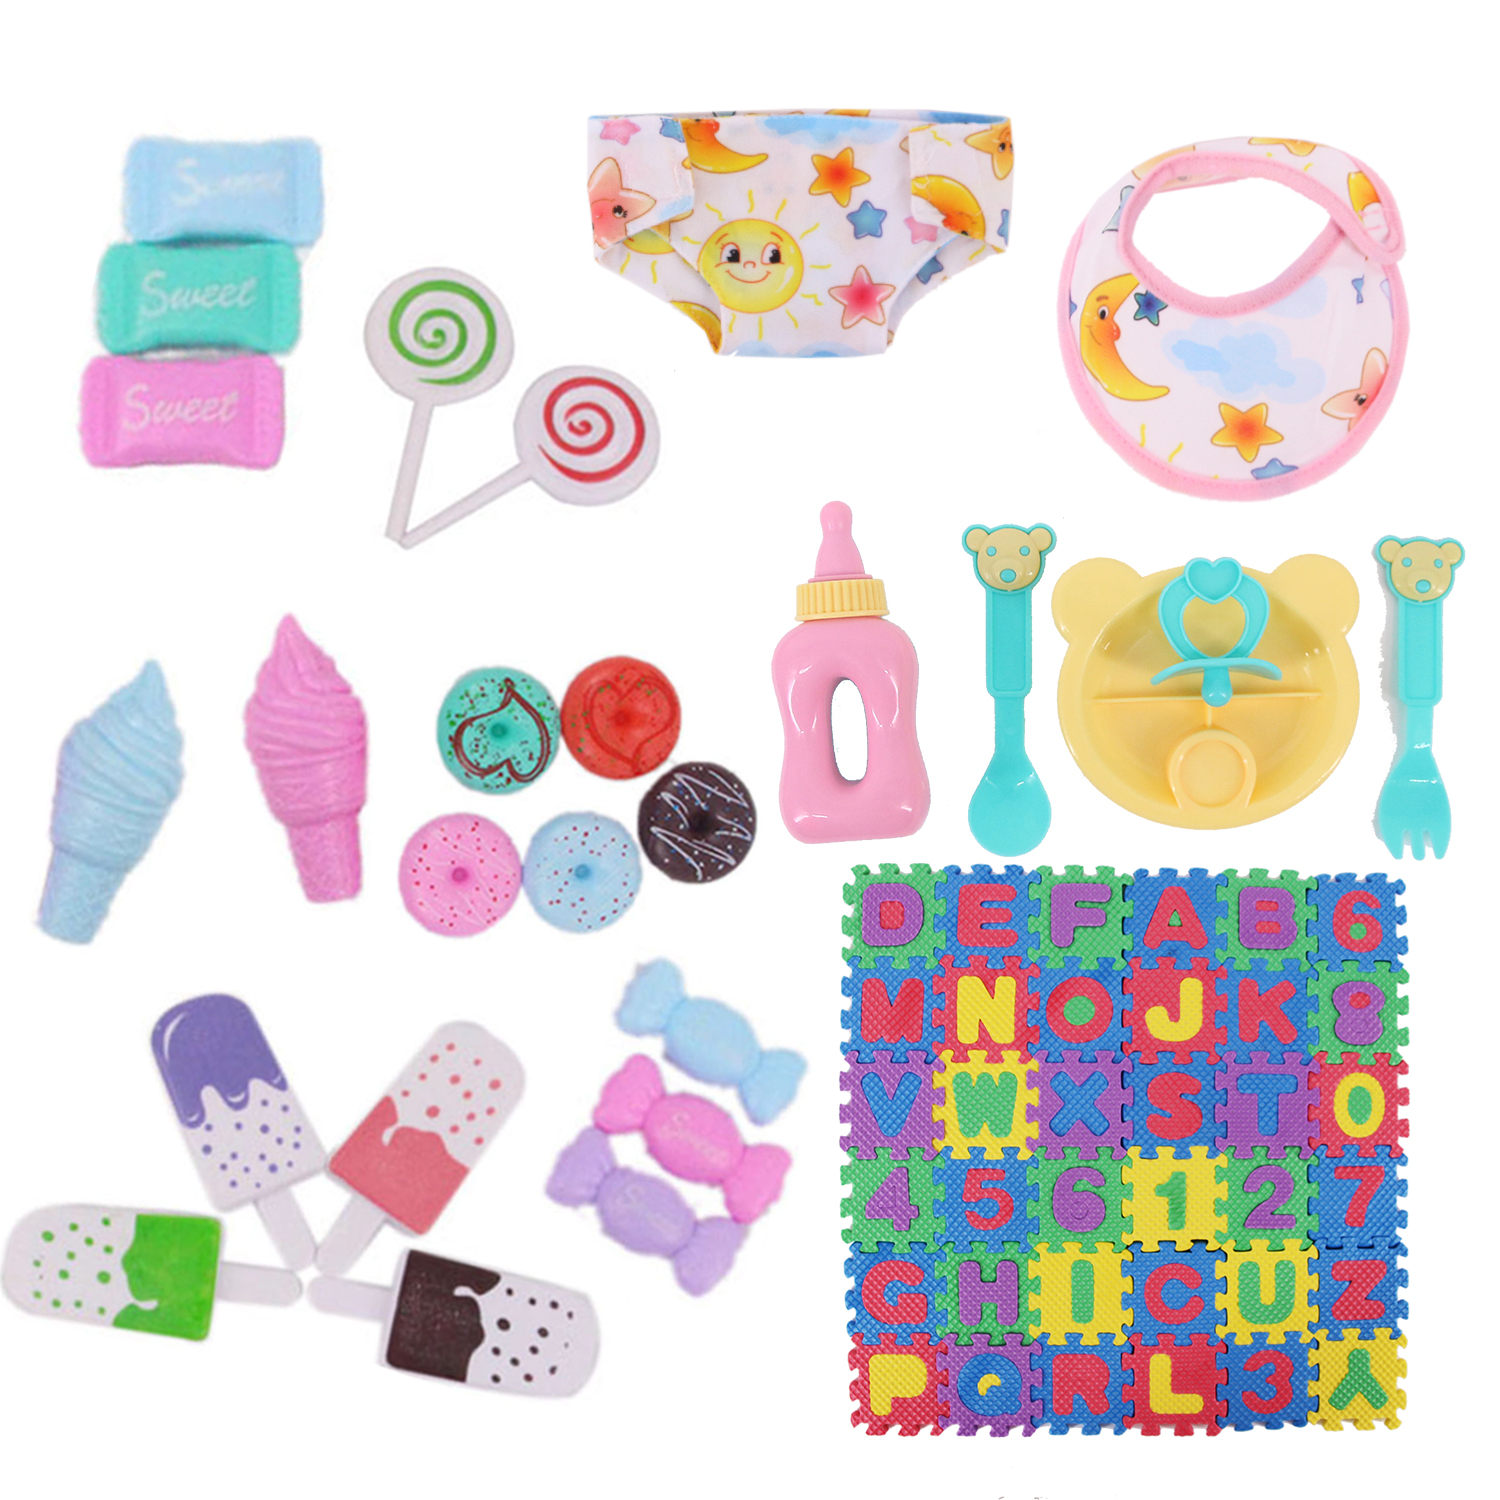 Doll Clothes Mini Play Toy Blanket Food Candy Bowel Nipple For 18 Inch American Of Girl&43Cm Baby New Born Doll Our Generation-3